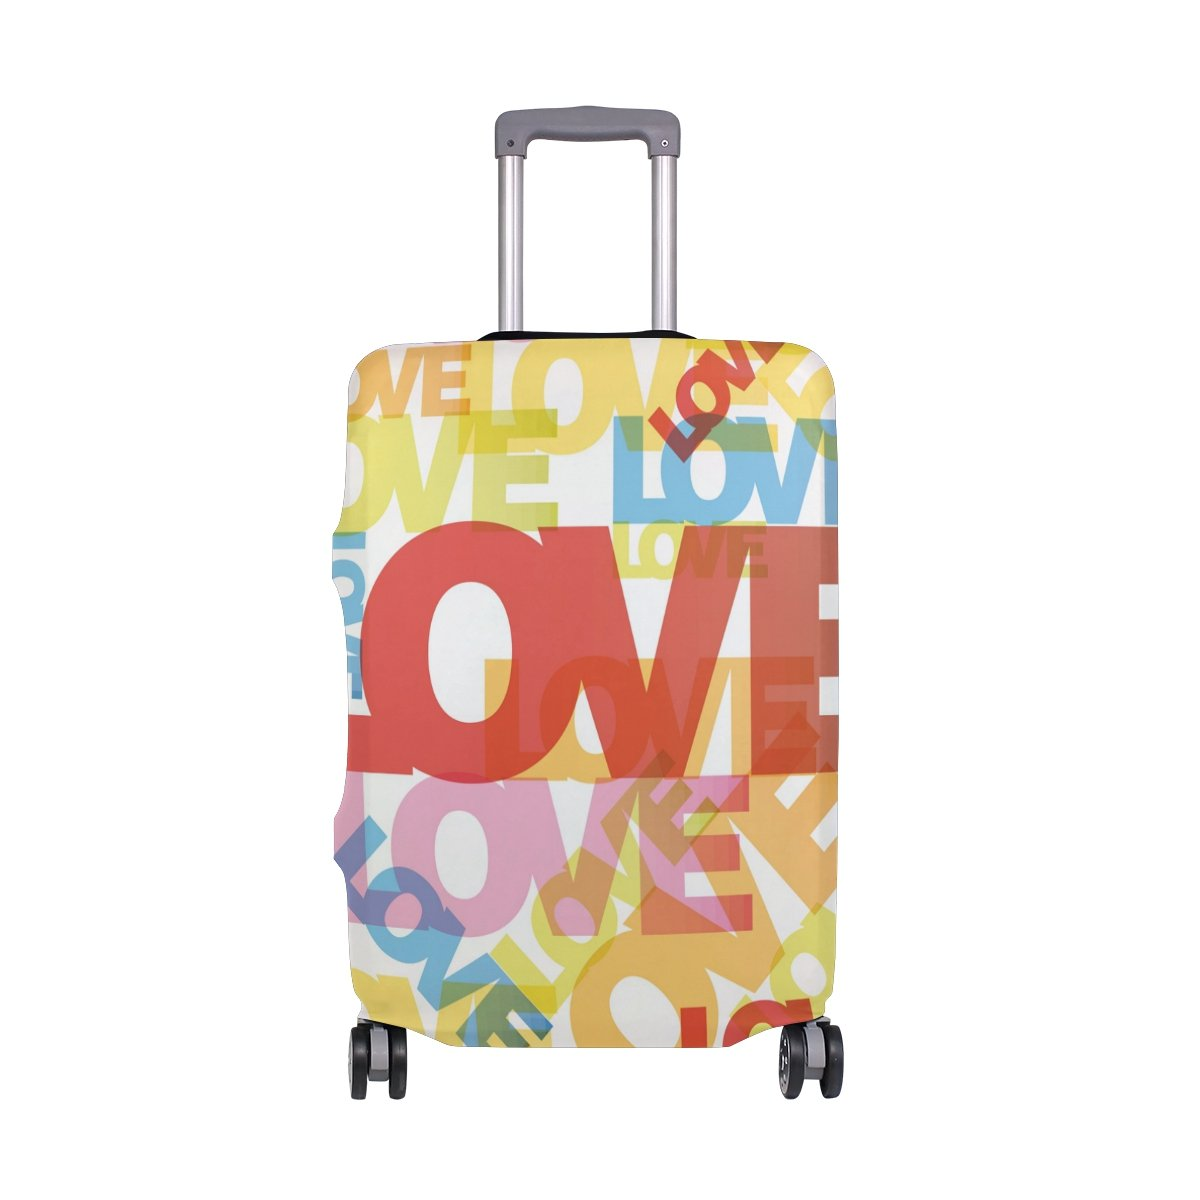 Cute Love Heart Valentines Day Birthday Suitcase Luggage Cover Protector for Travel Kids Men Women